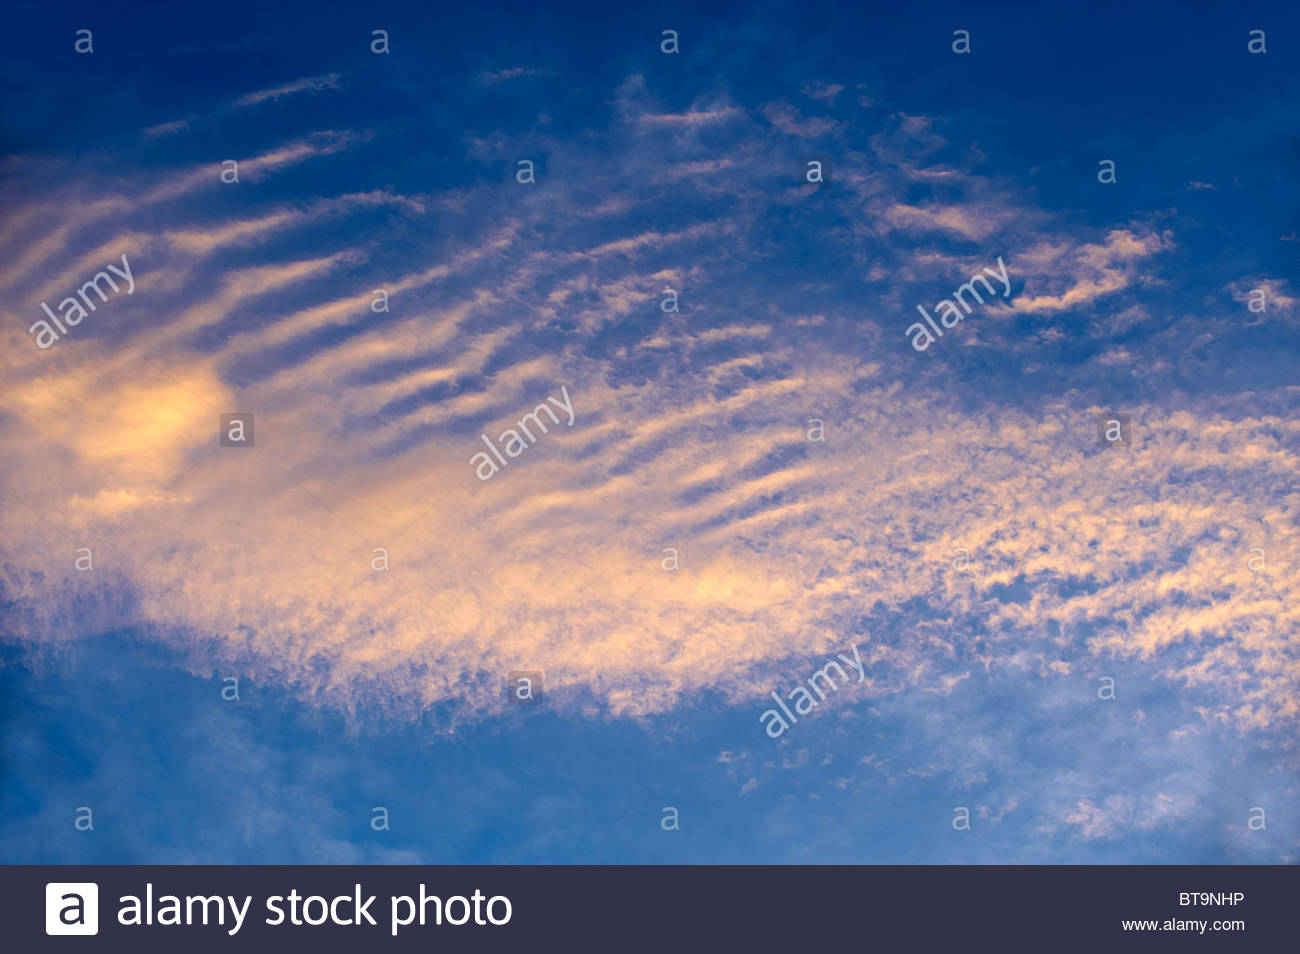 Cirrus uncinus at sunrise over the Cylades Island of Ios - Stock Image